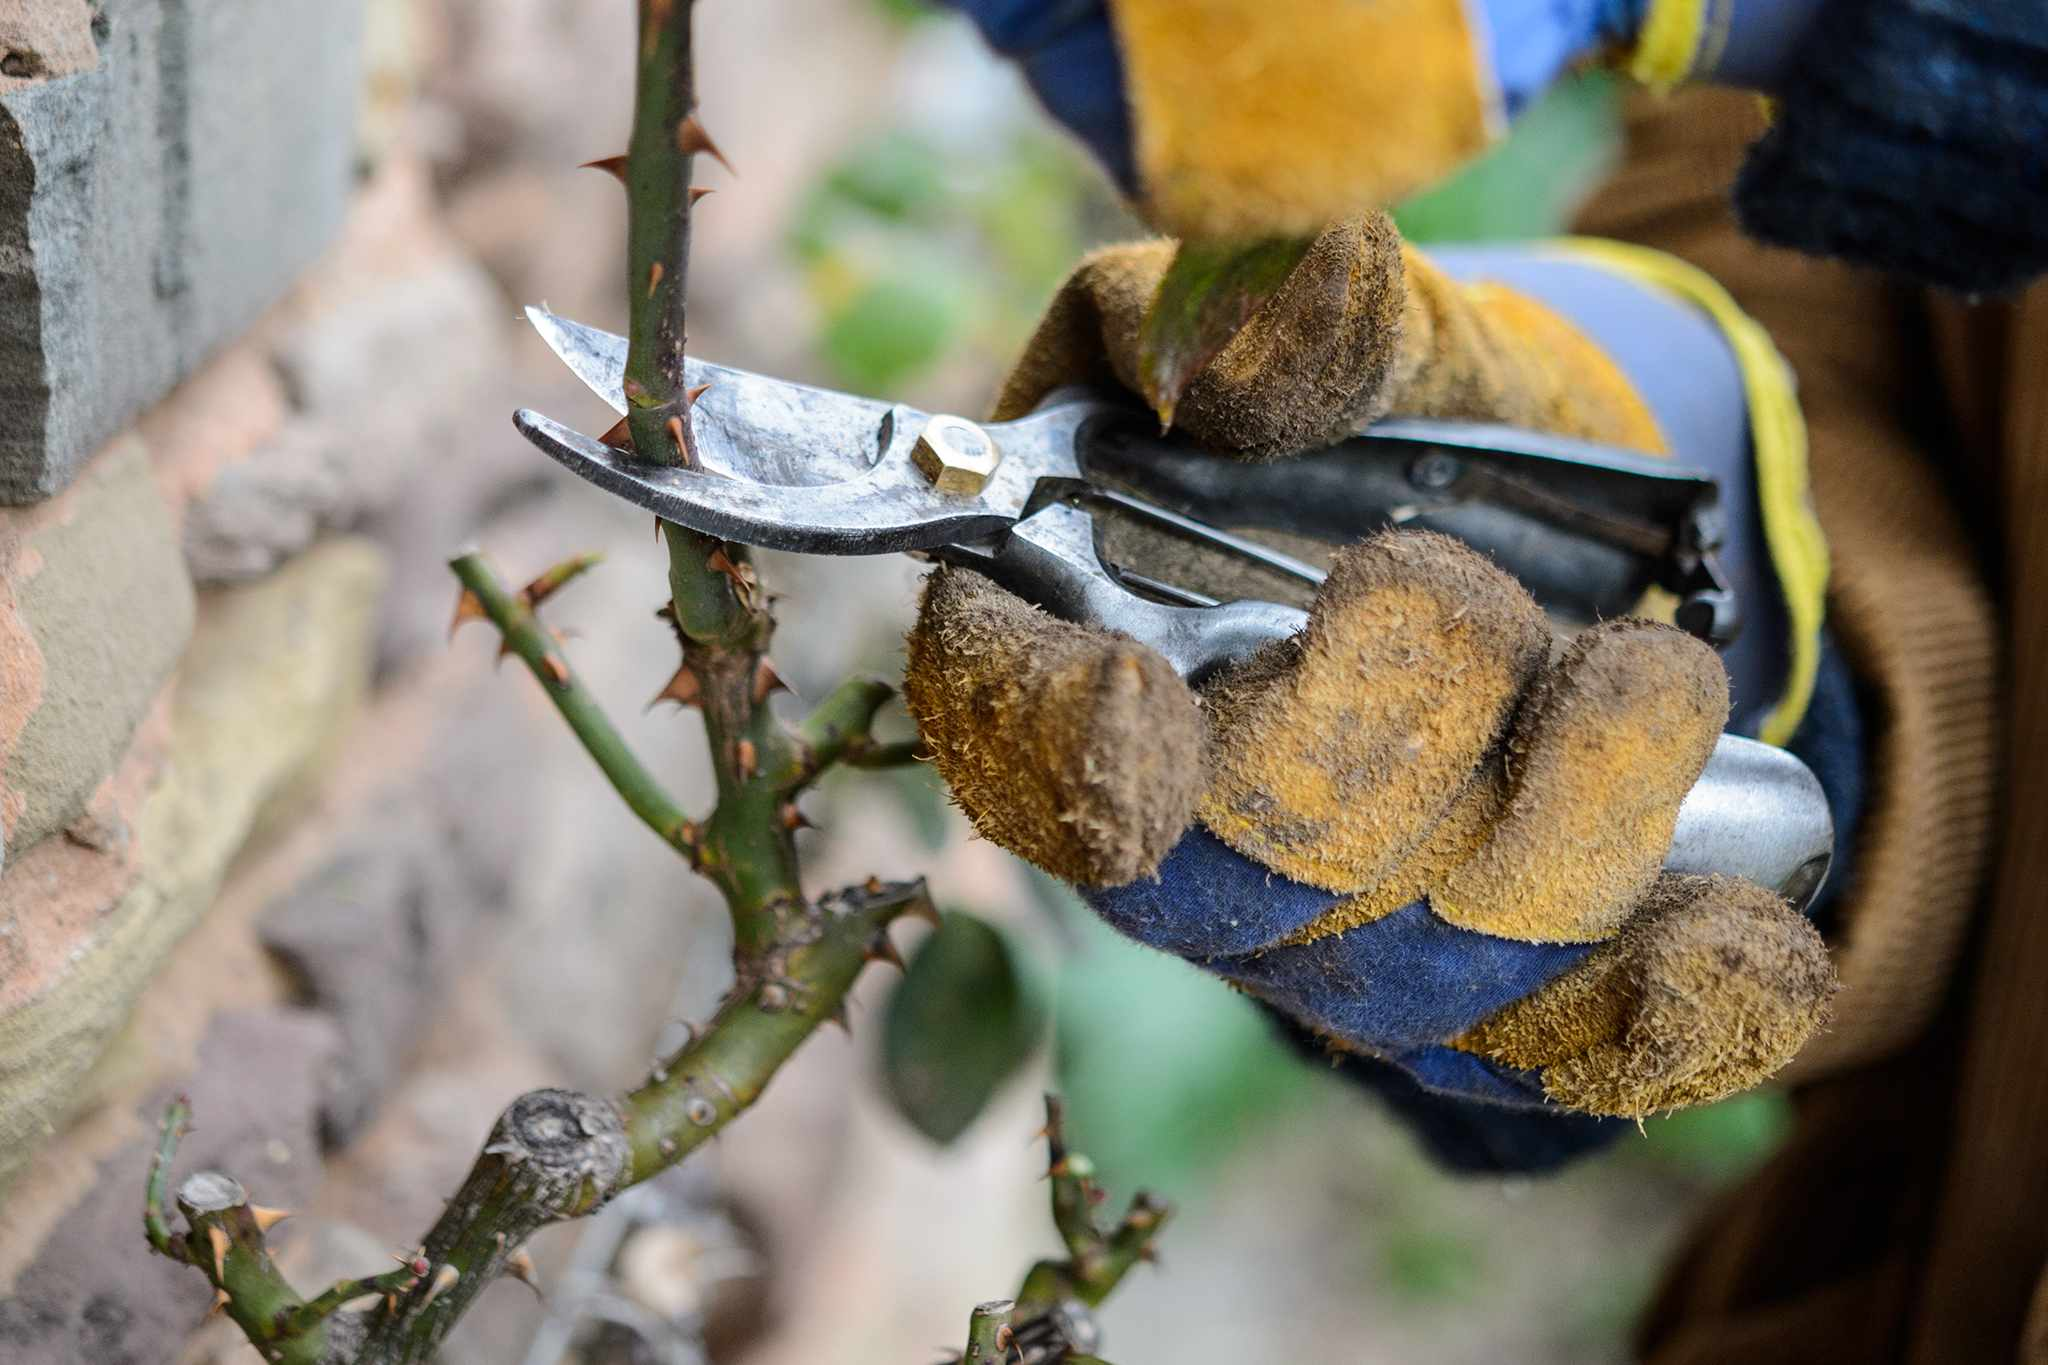 Pruning a climbing rose sideshoot